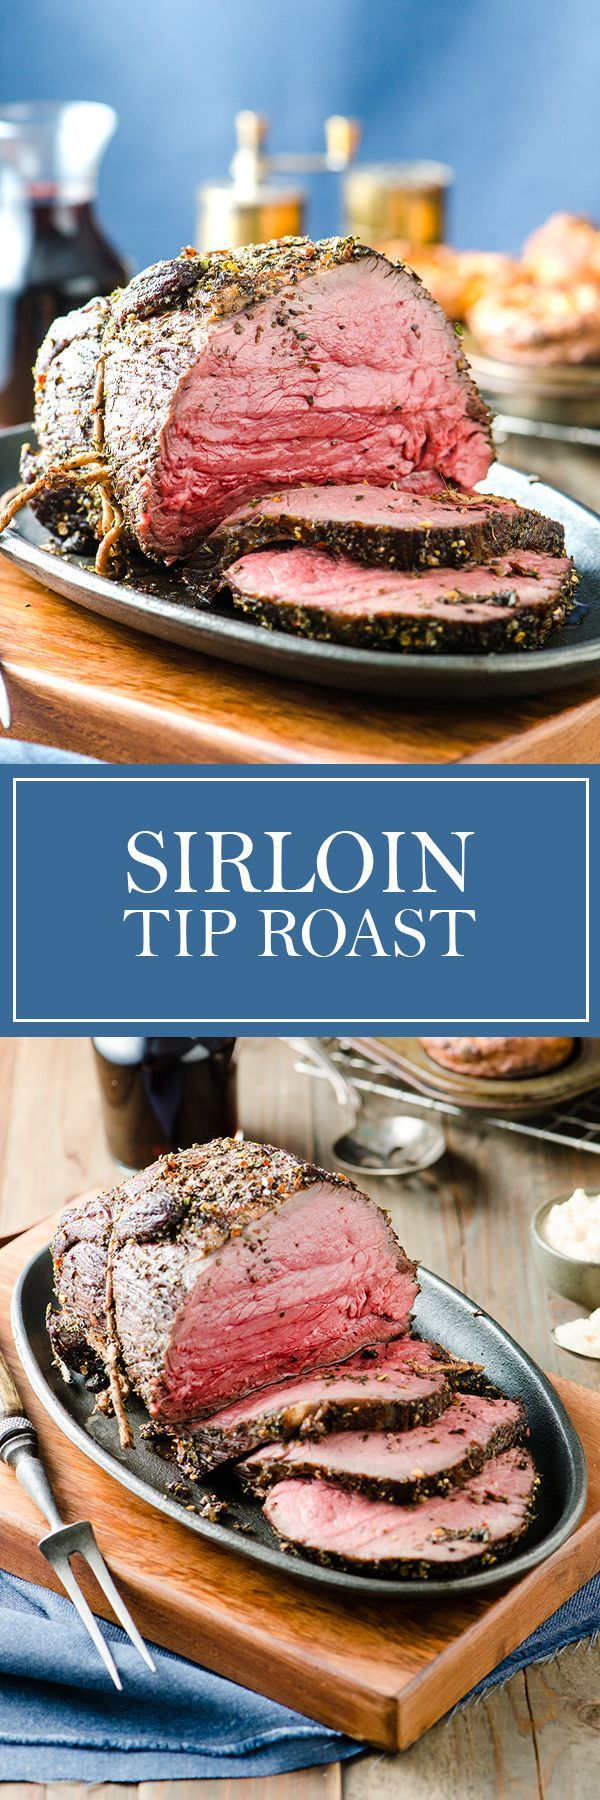 Sirloin Tip Roast - These simple spices and great cooking technique make for a perfect roast every time.